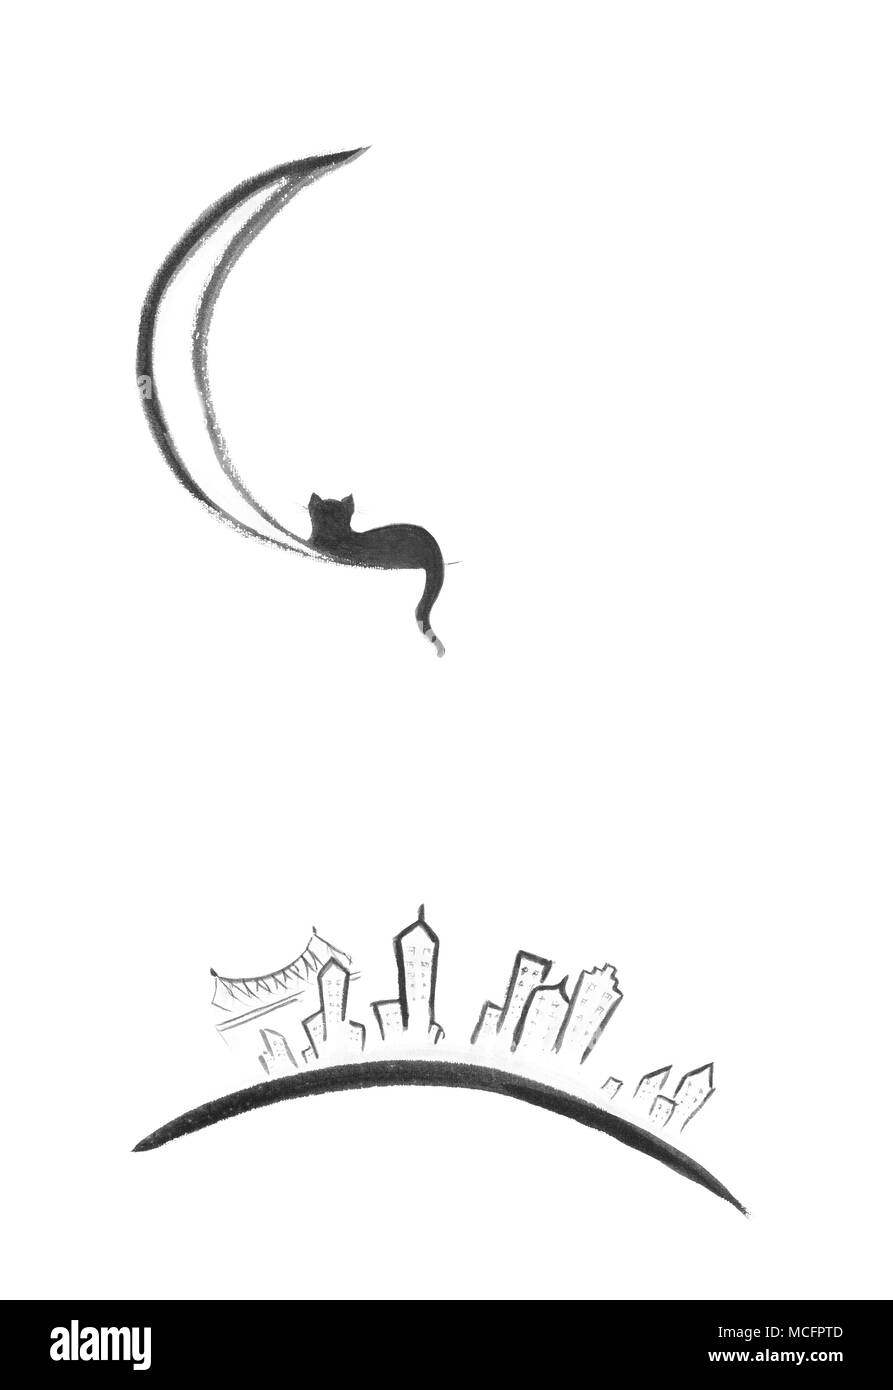 Black cat lying on the moon above New York city at night, artistic oriental style illustration, Sumi-e painting based design isolated on white backgro - Stock Image